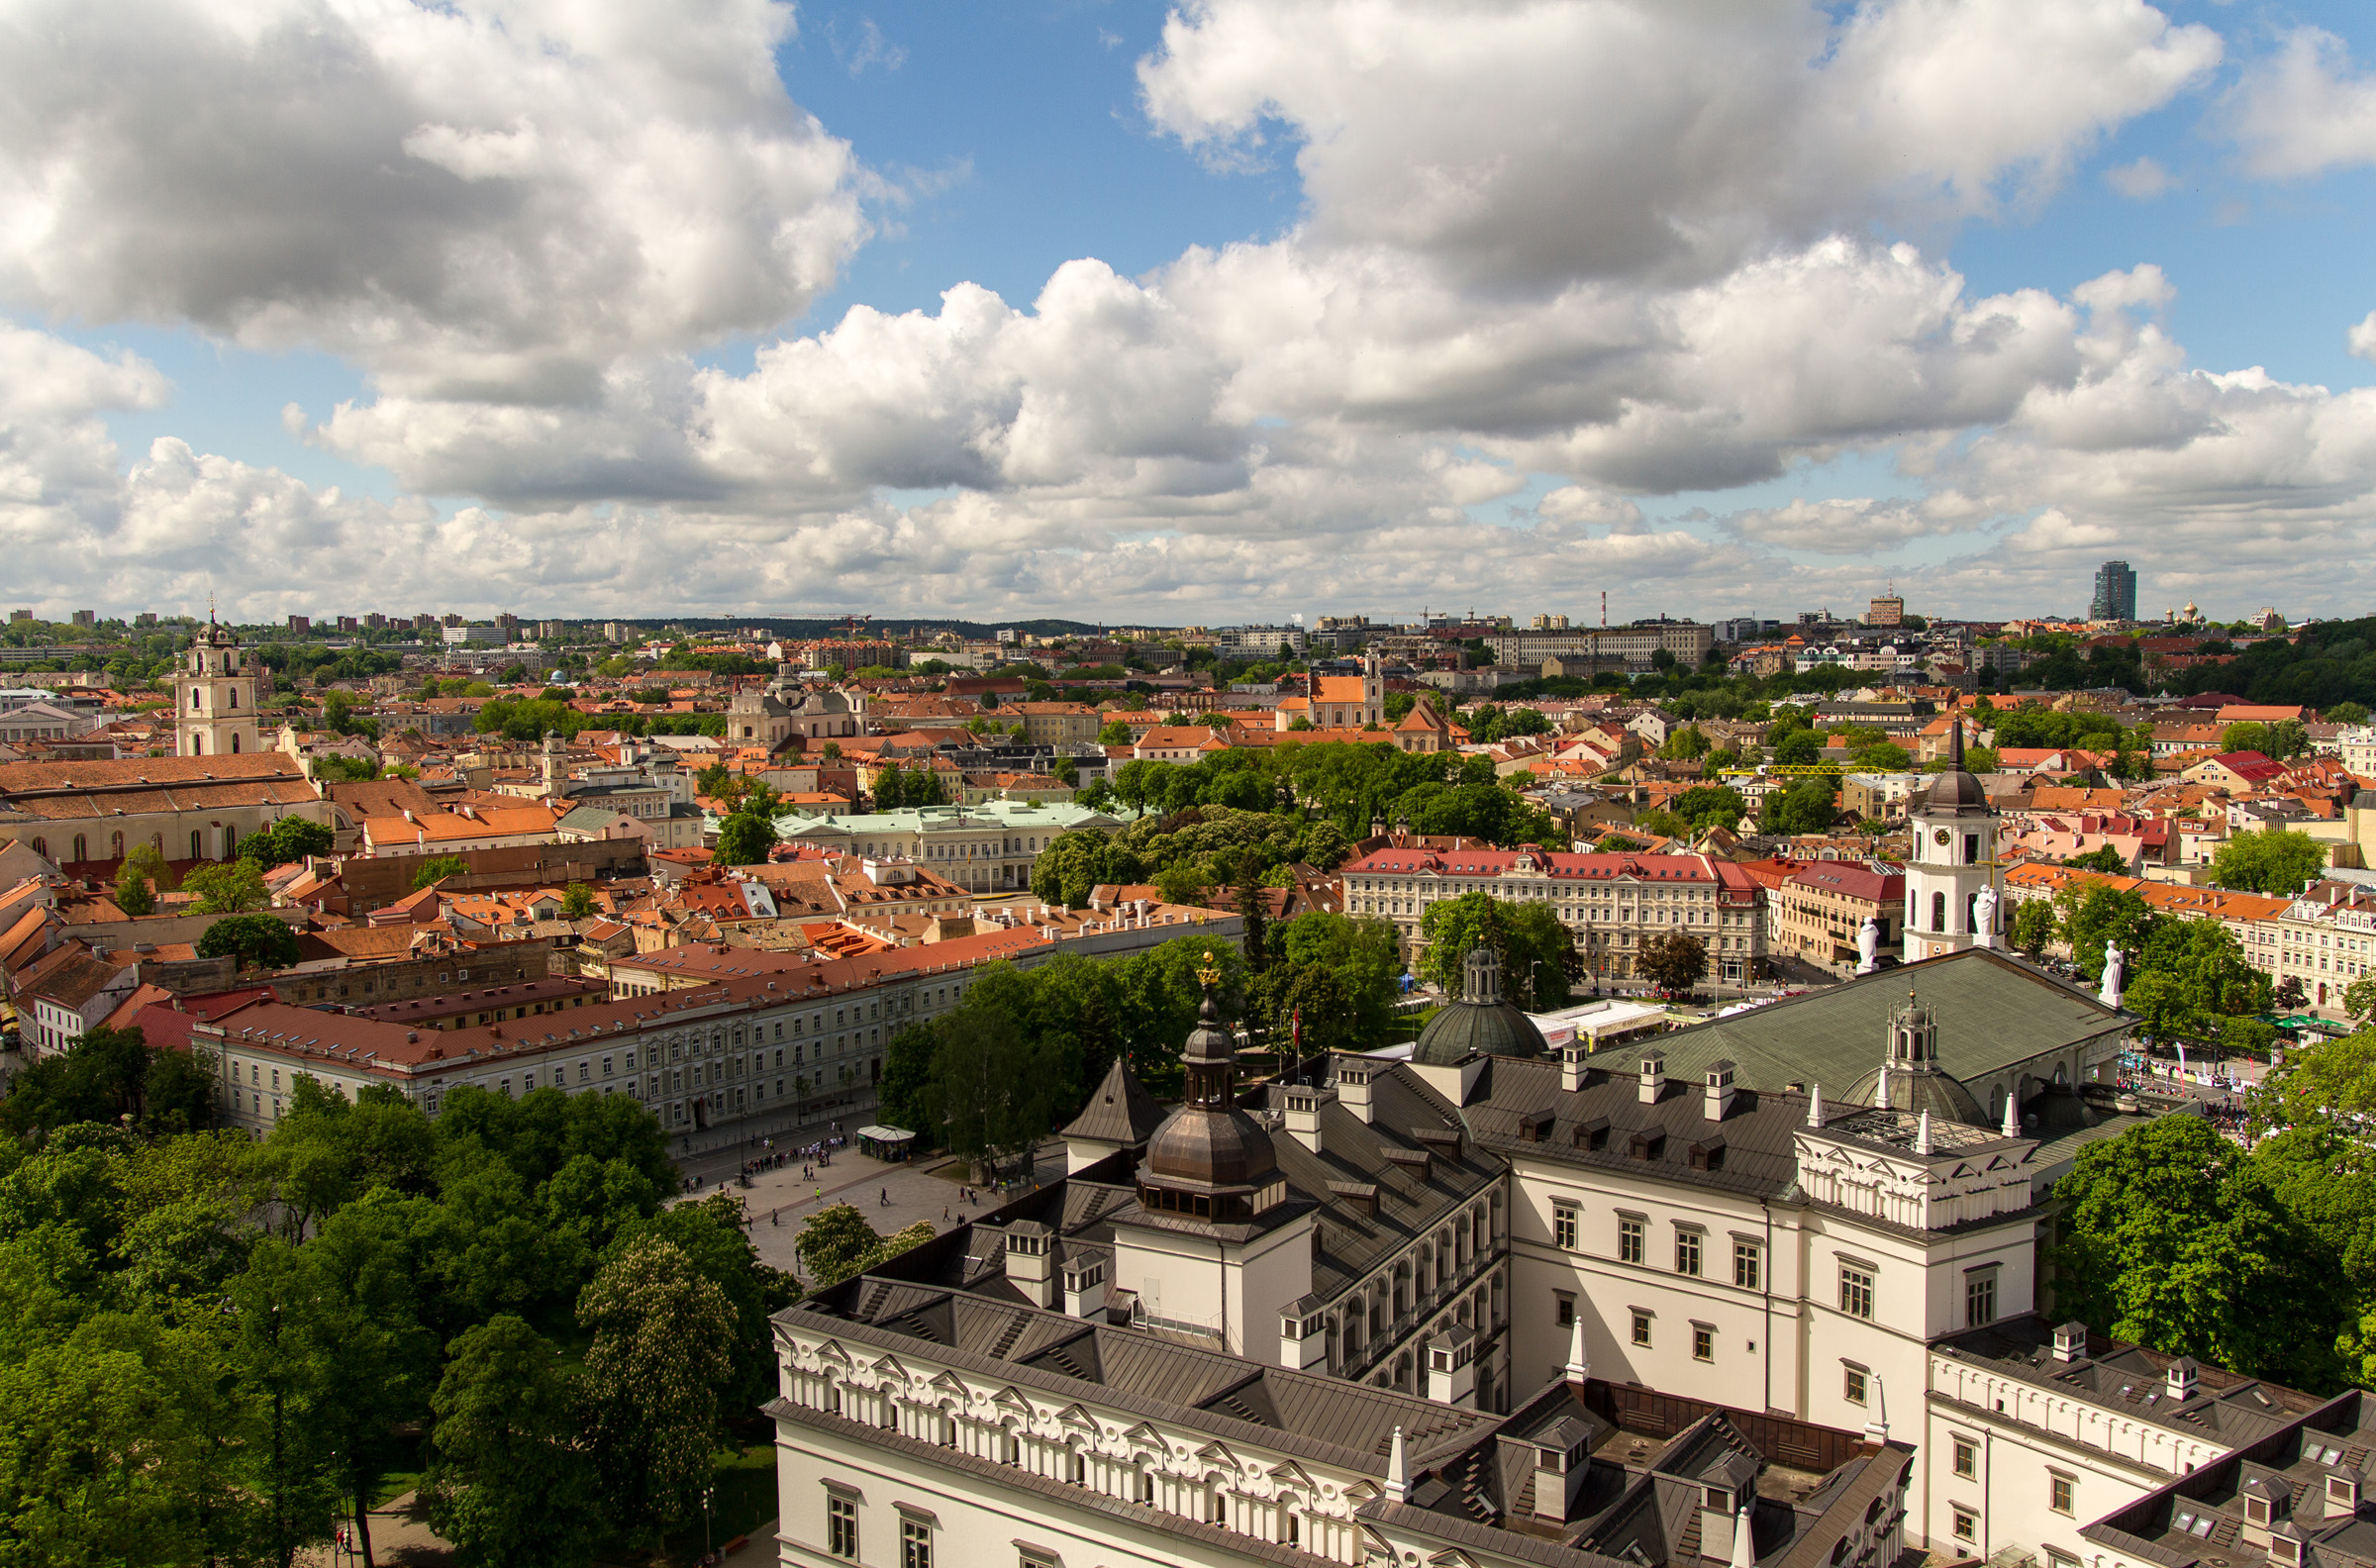 Vilnius, Lithuania - by Willi Thiel